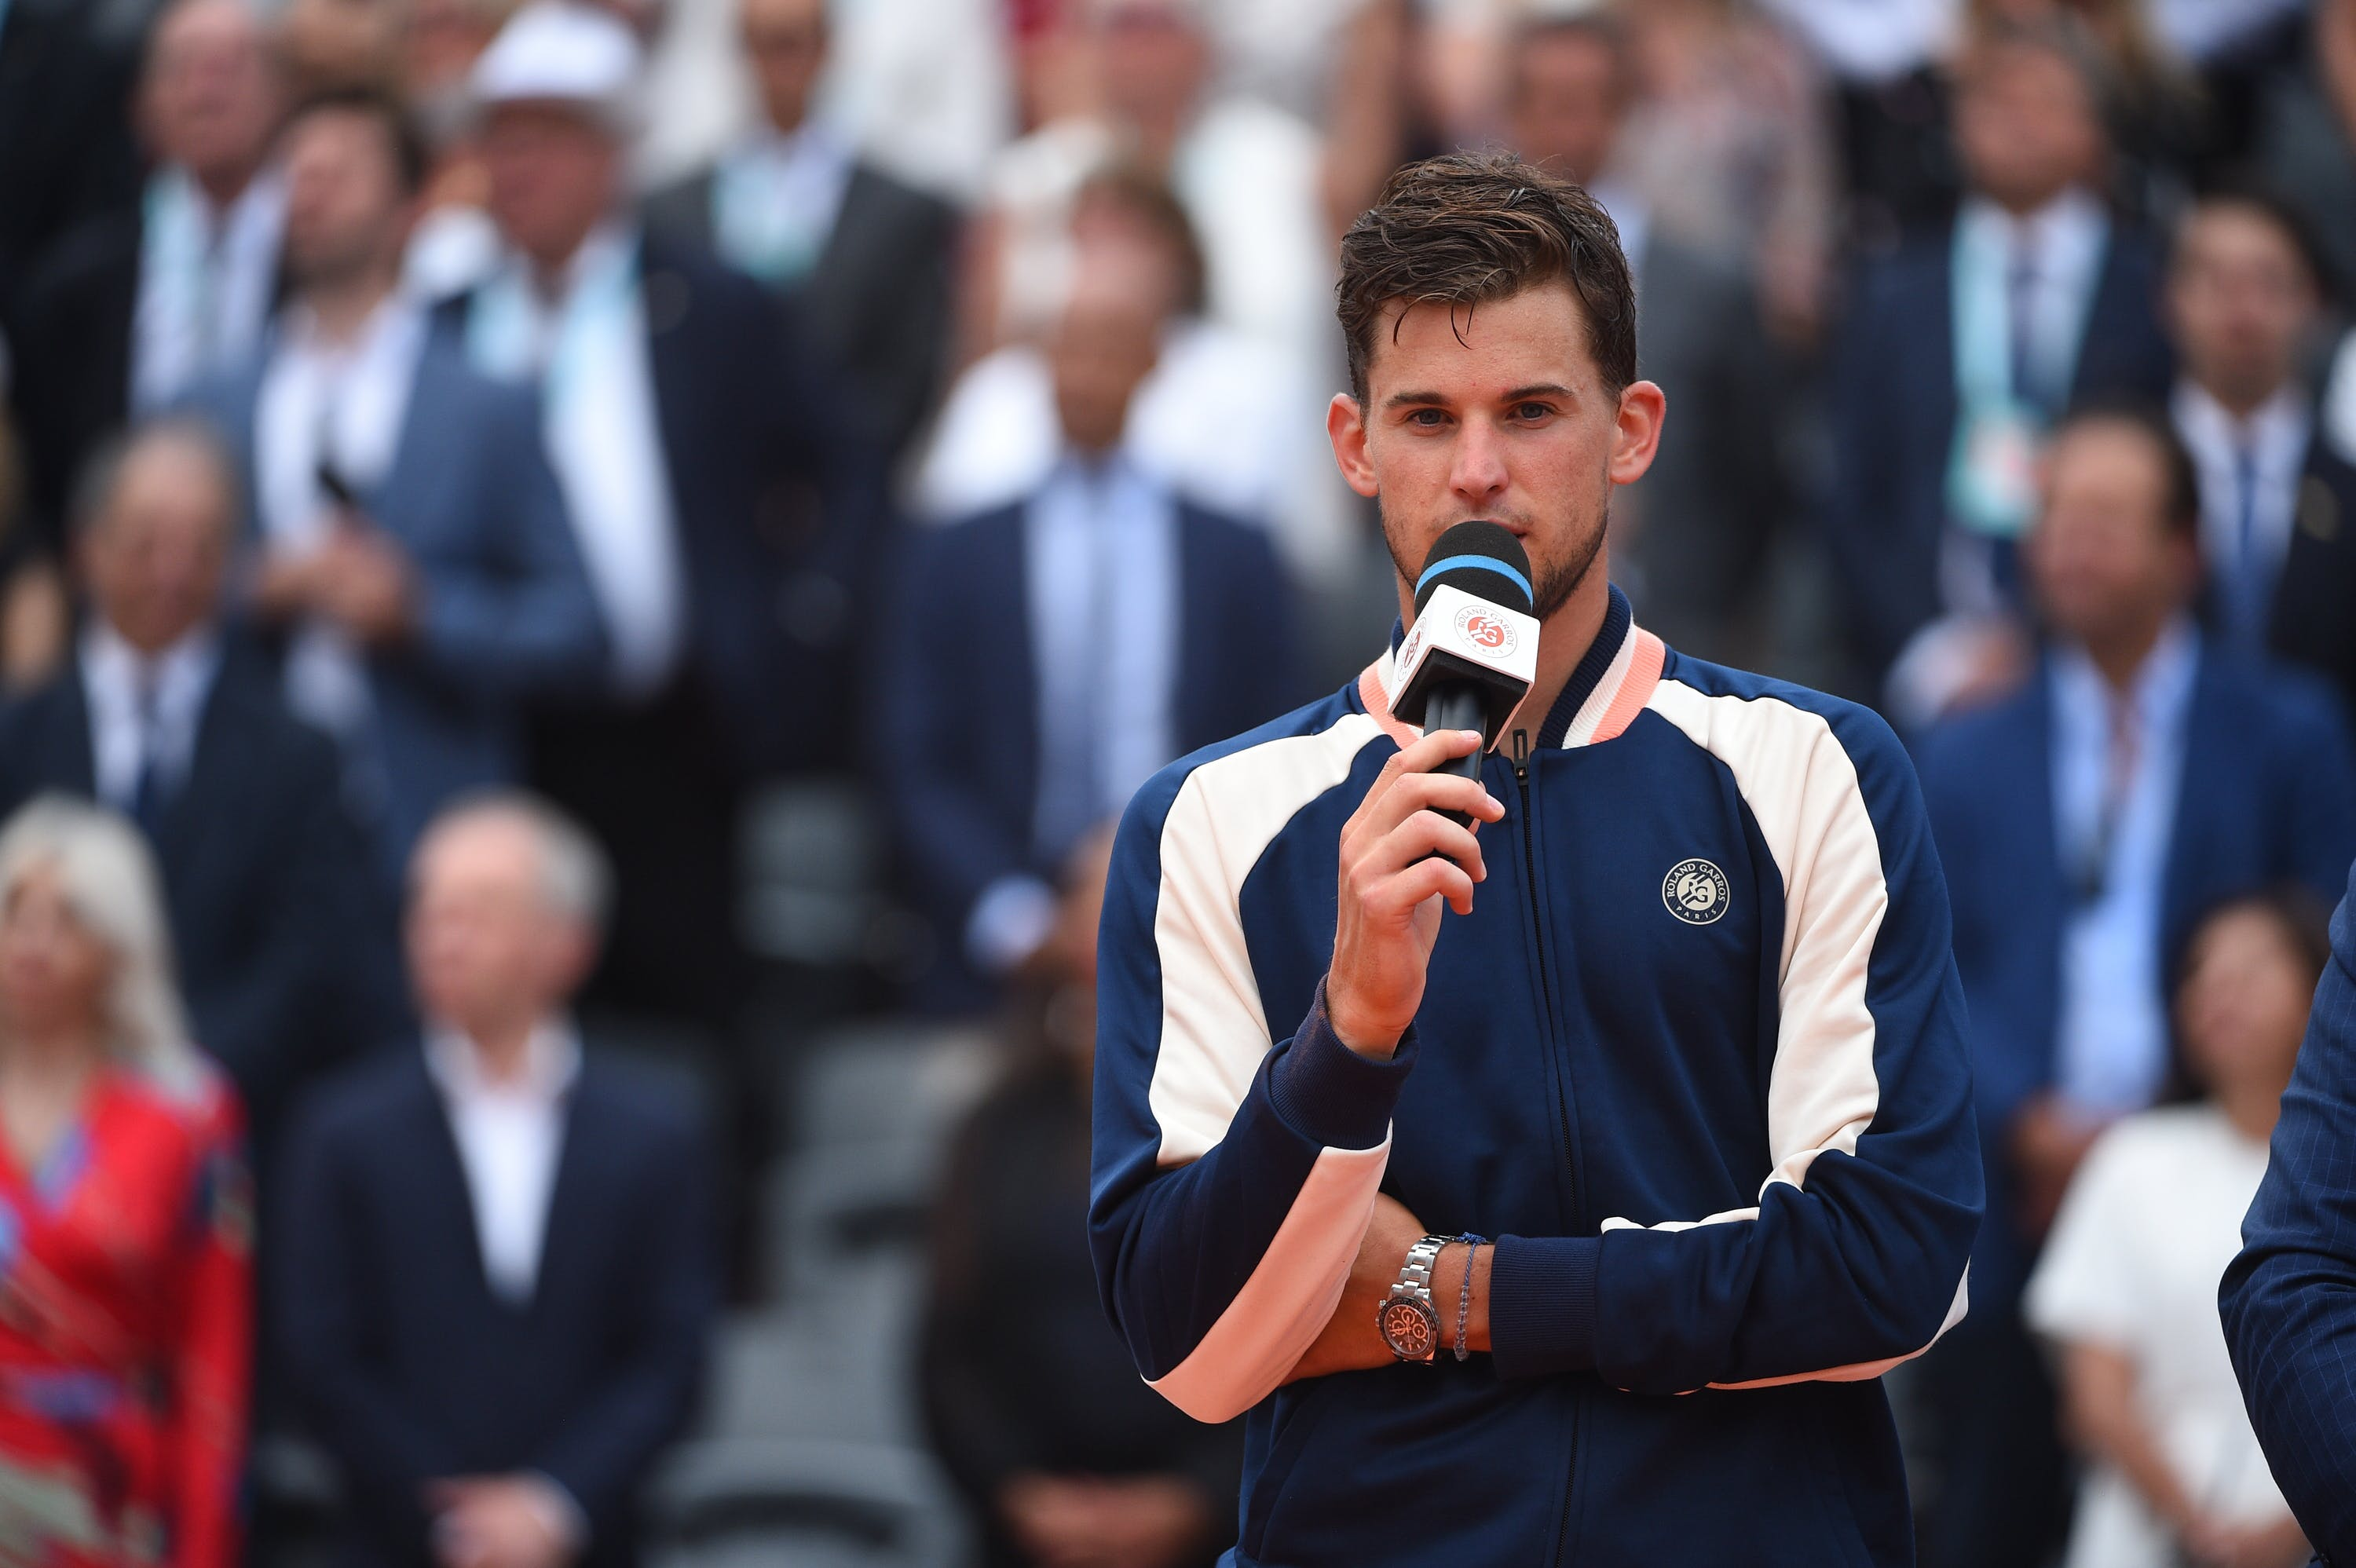 Dominic Thiem during the final ceremony at Roland-Garros 2018